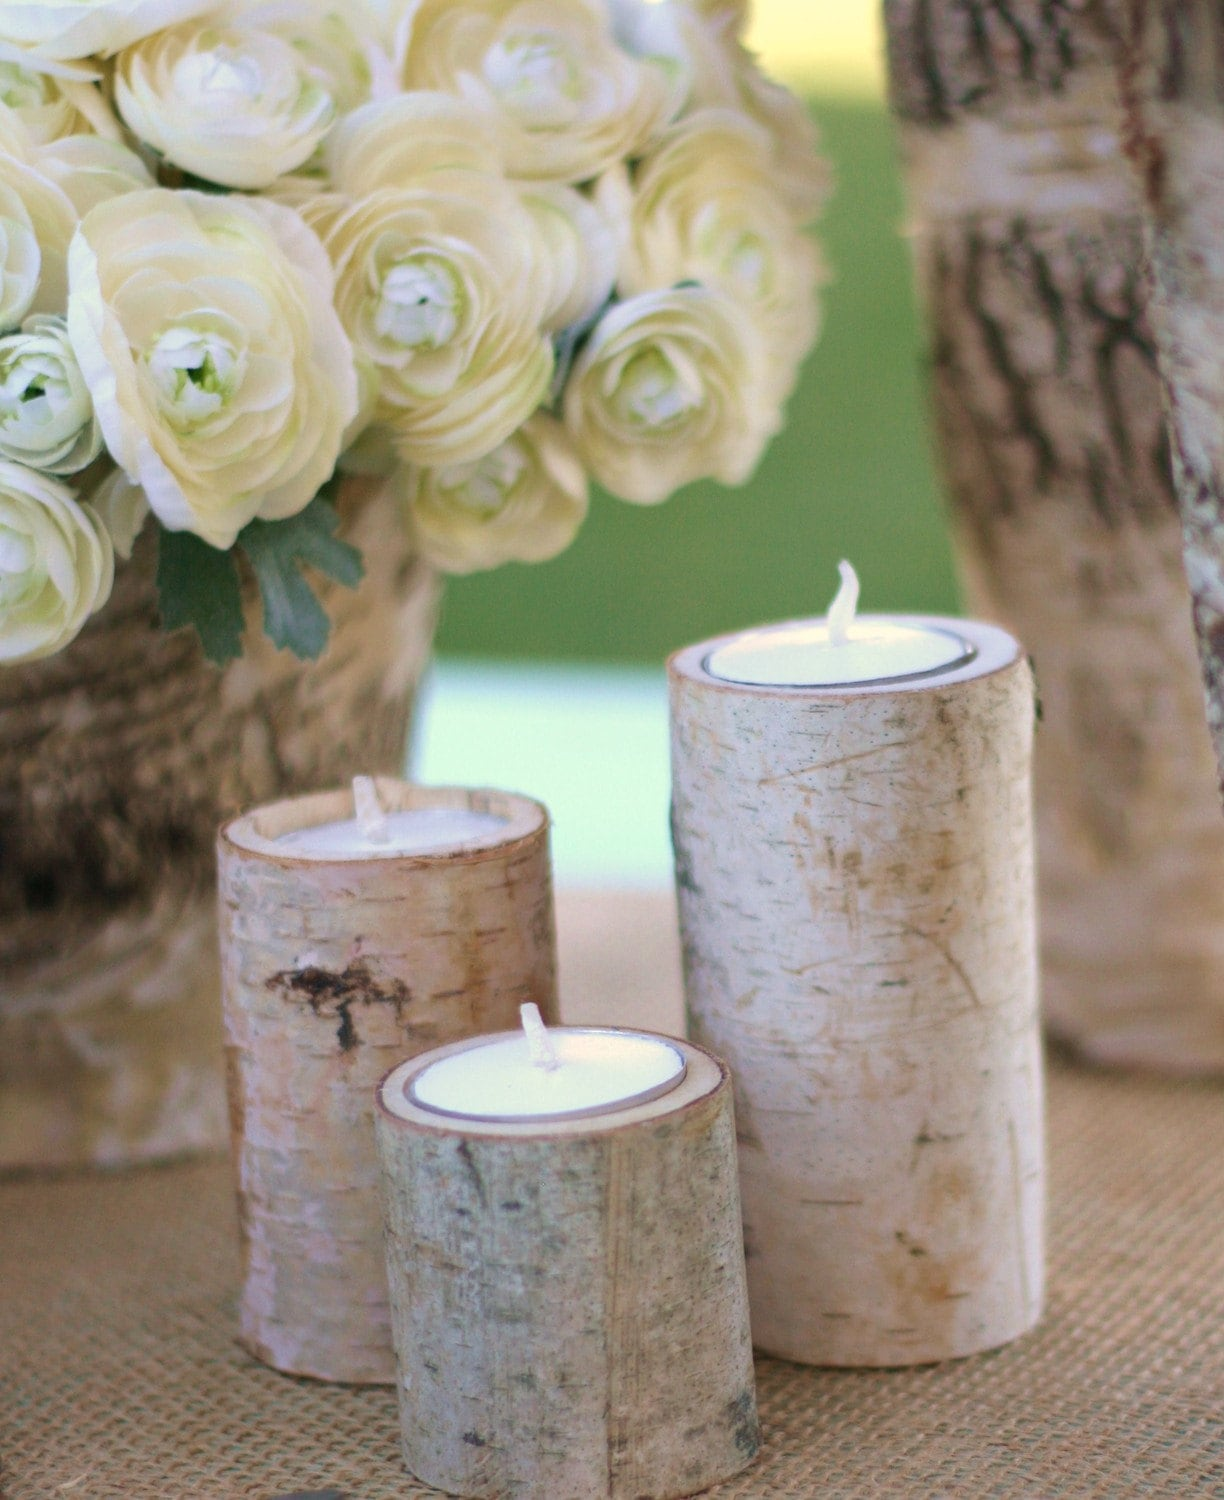 25 Centerpiece Natural Eco Friendly Birch Bark Log Votive Tea Light Candle Holders Rustic Woodland Spring Summer Garden Wedding Decorations Shabby Chic Vintage Bride